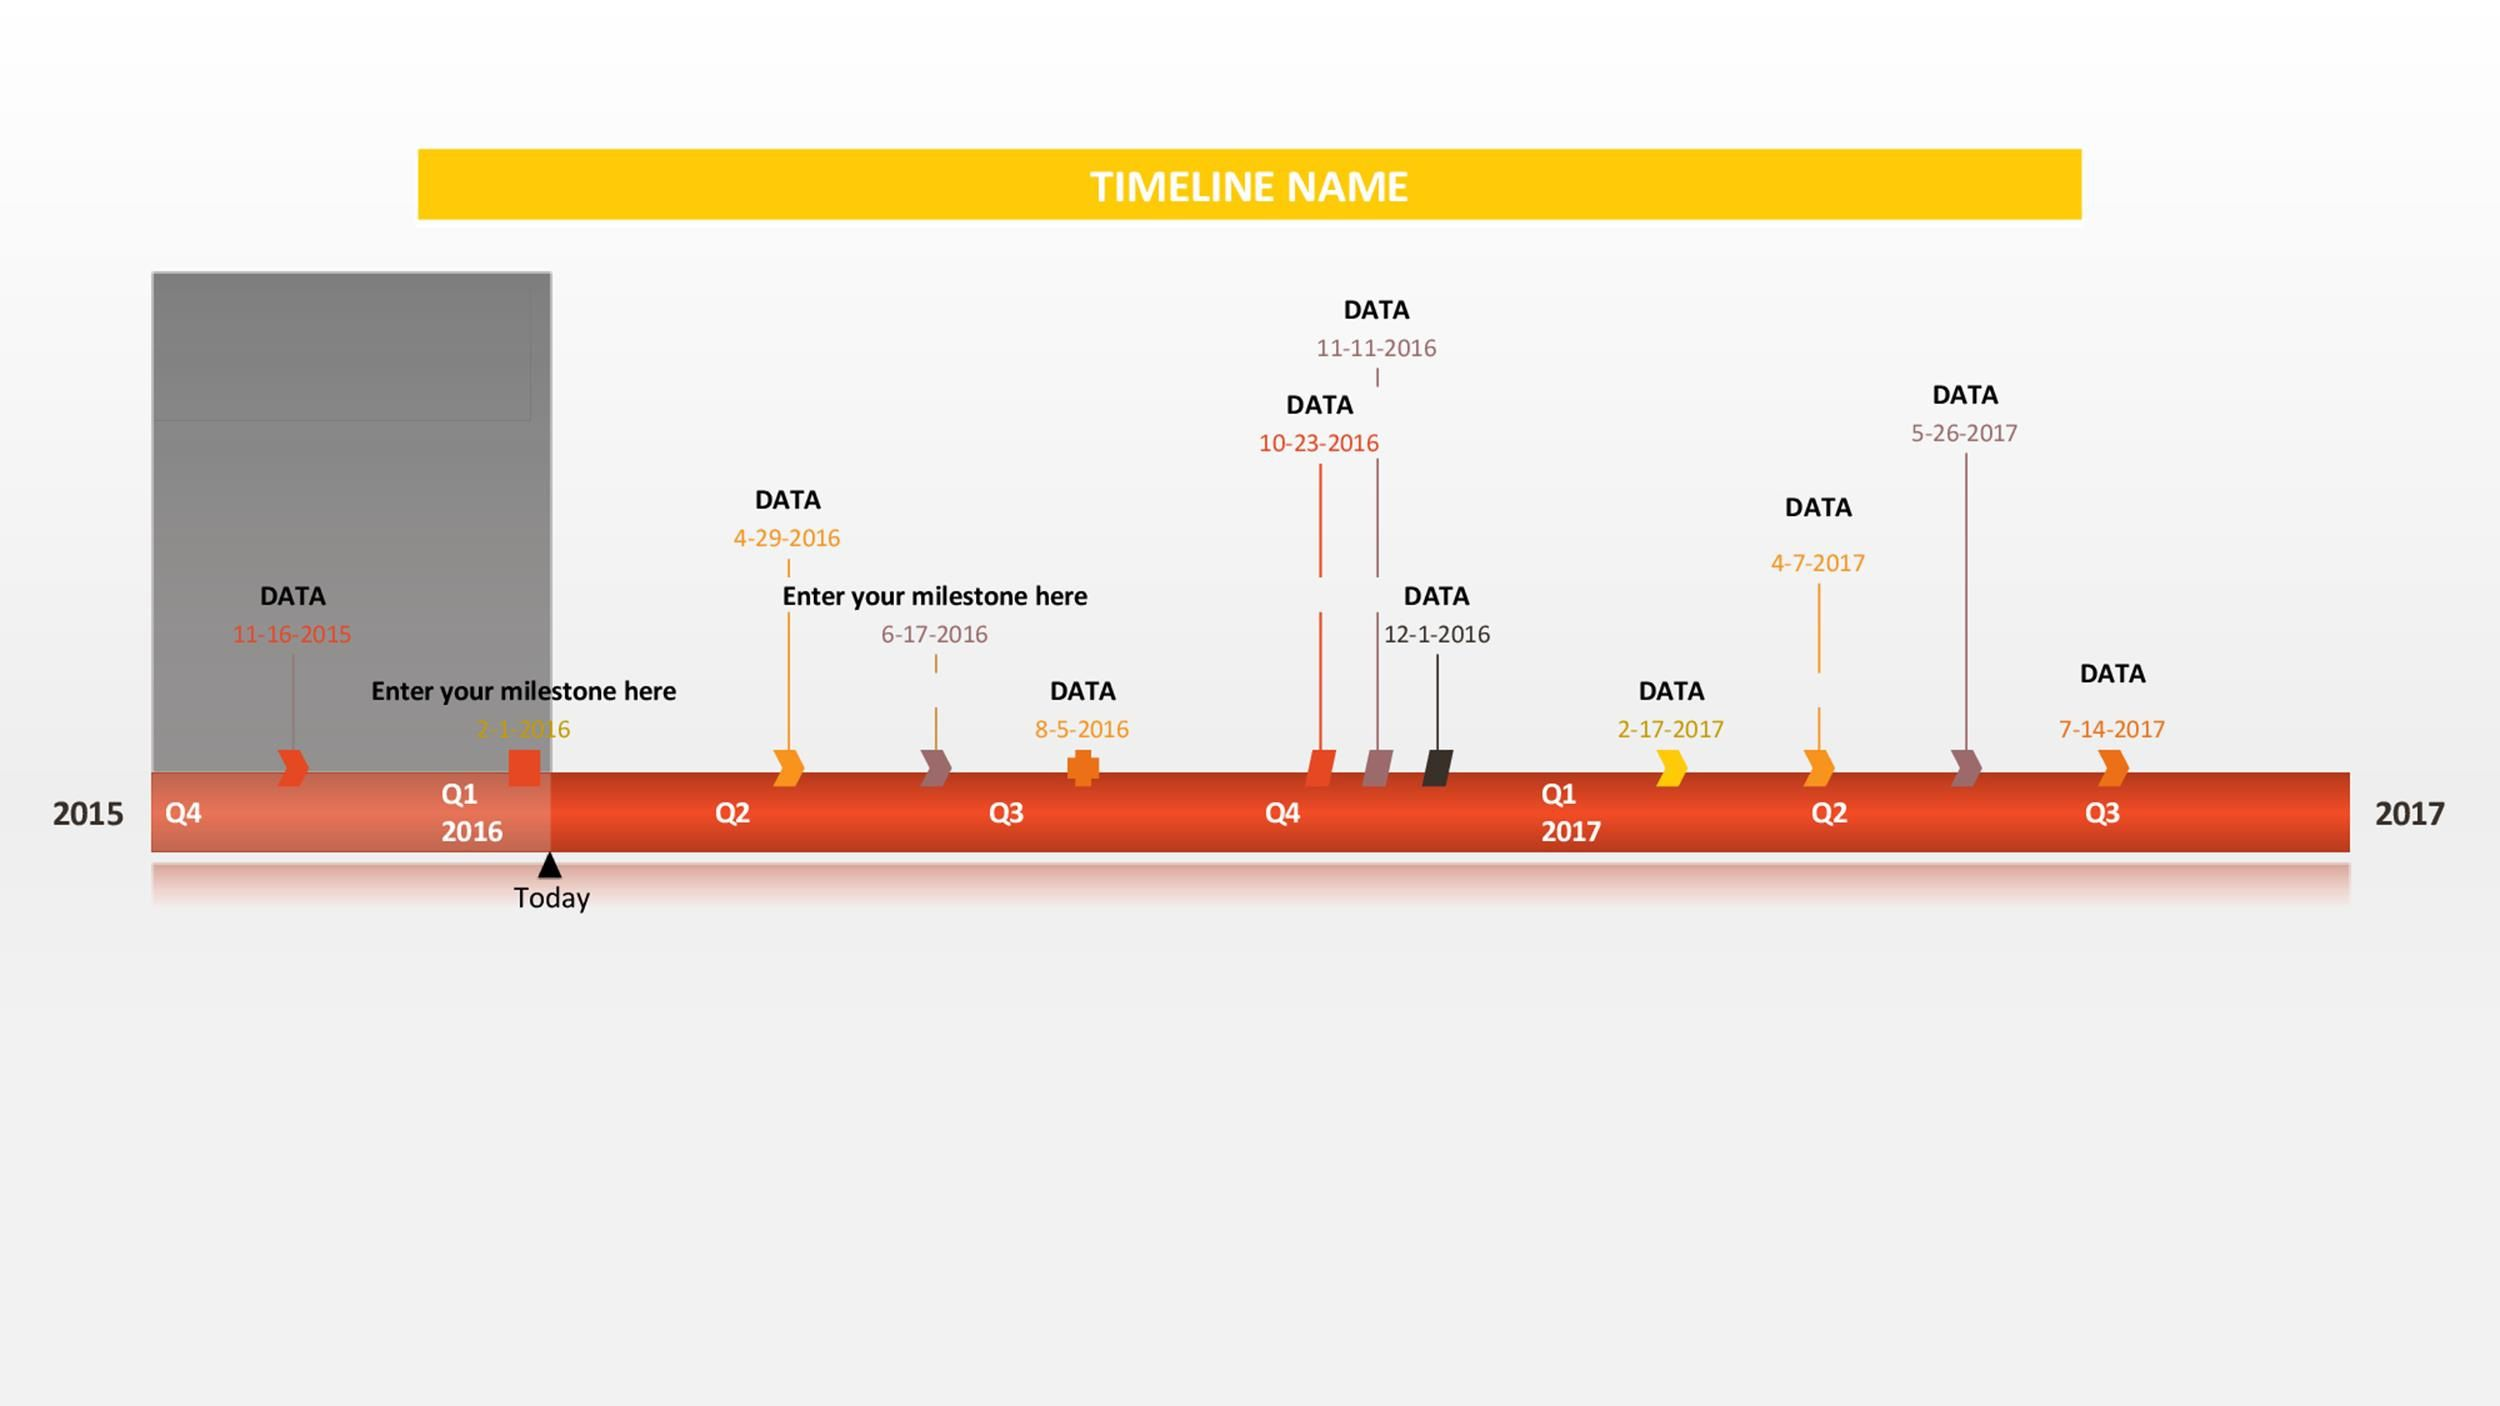 007 Remarkable Timeline Template For Word 2016 Picture Full